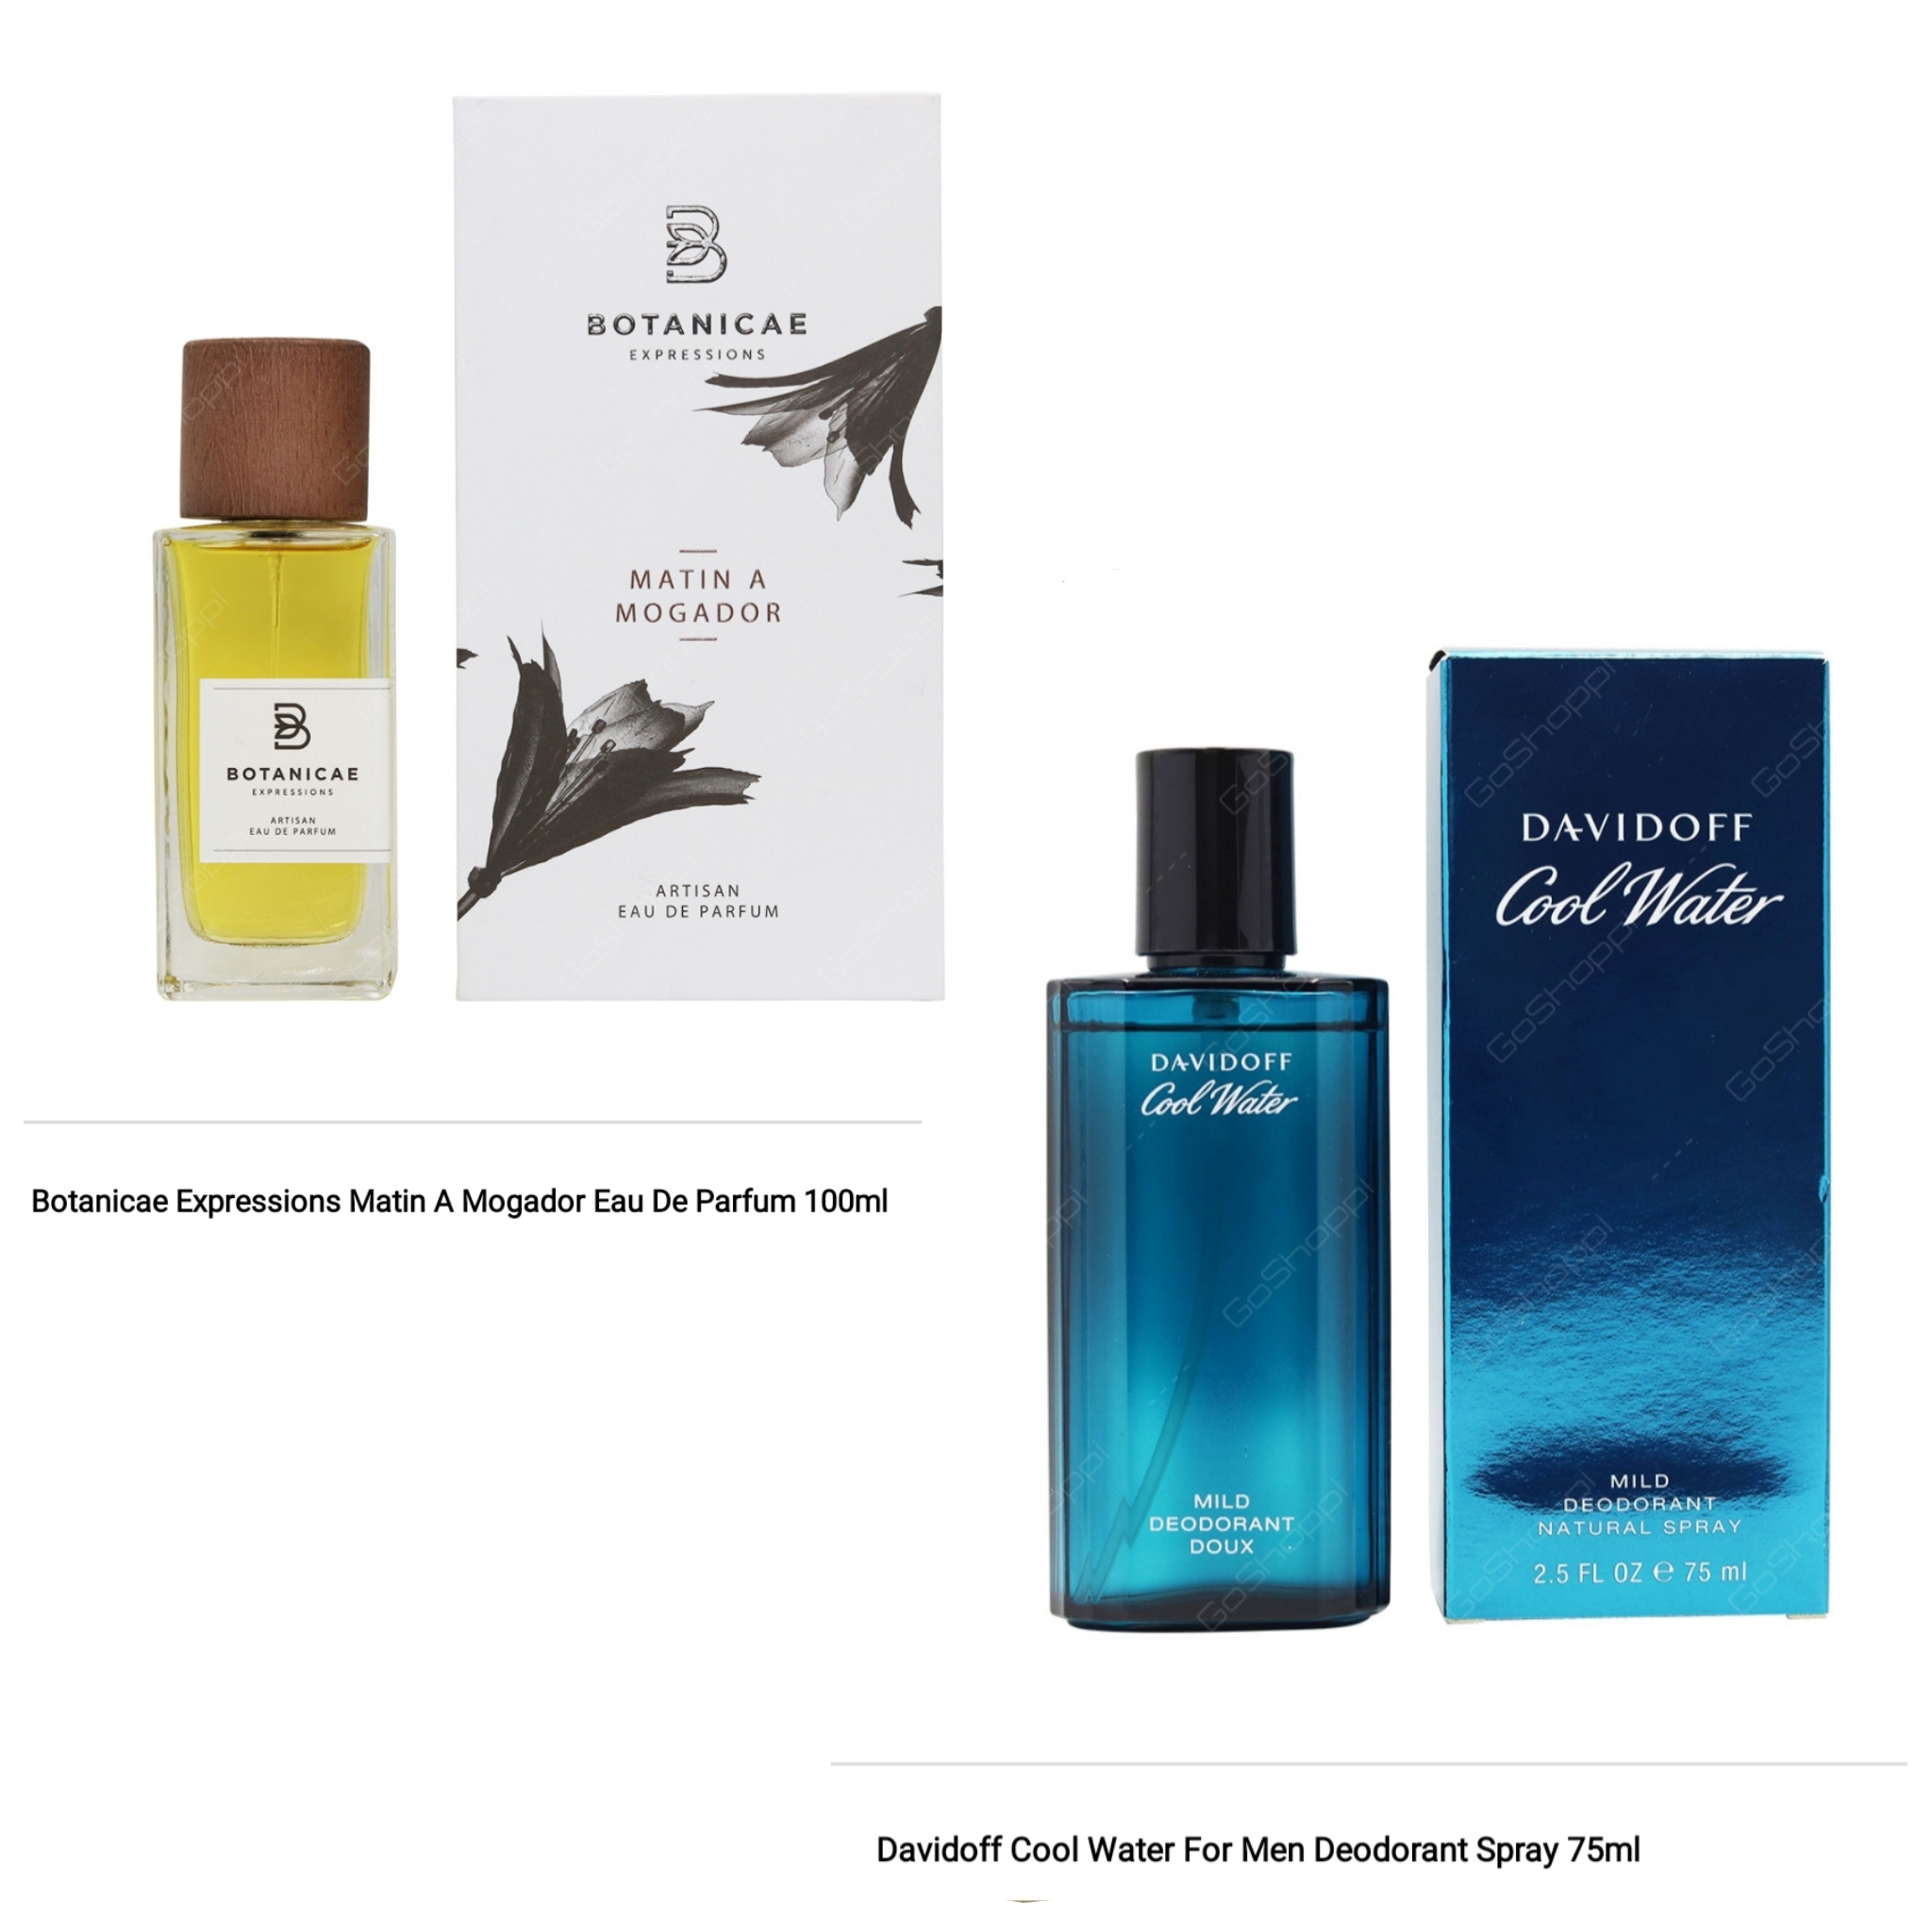 Botanicae Matin A Mogador 100ml and Davidoff Cool Water Deodrant Spray 75ml Combo Offer